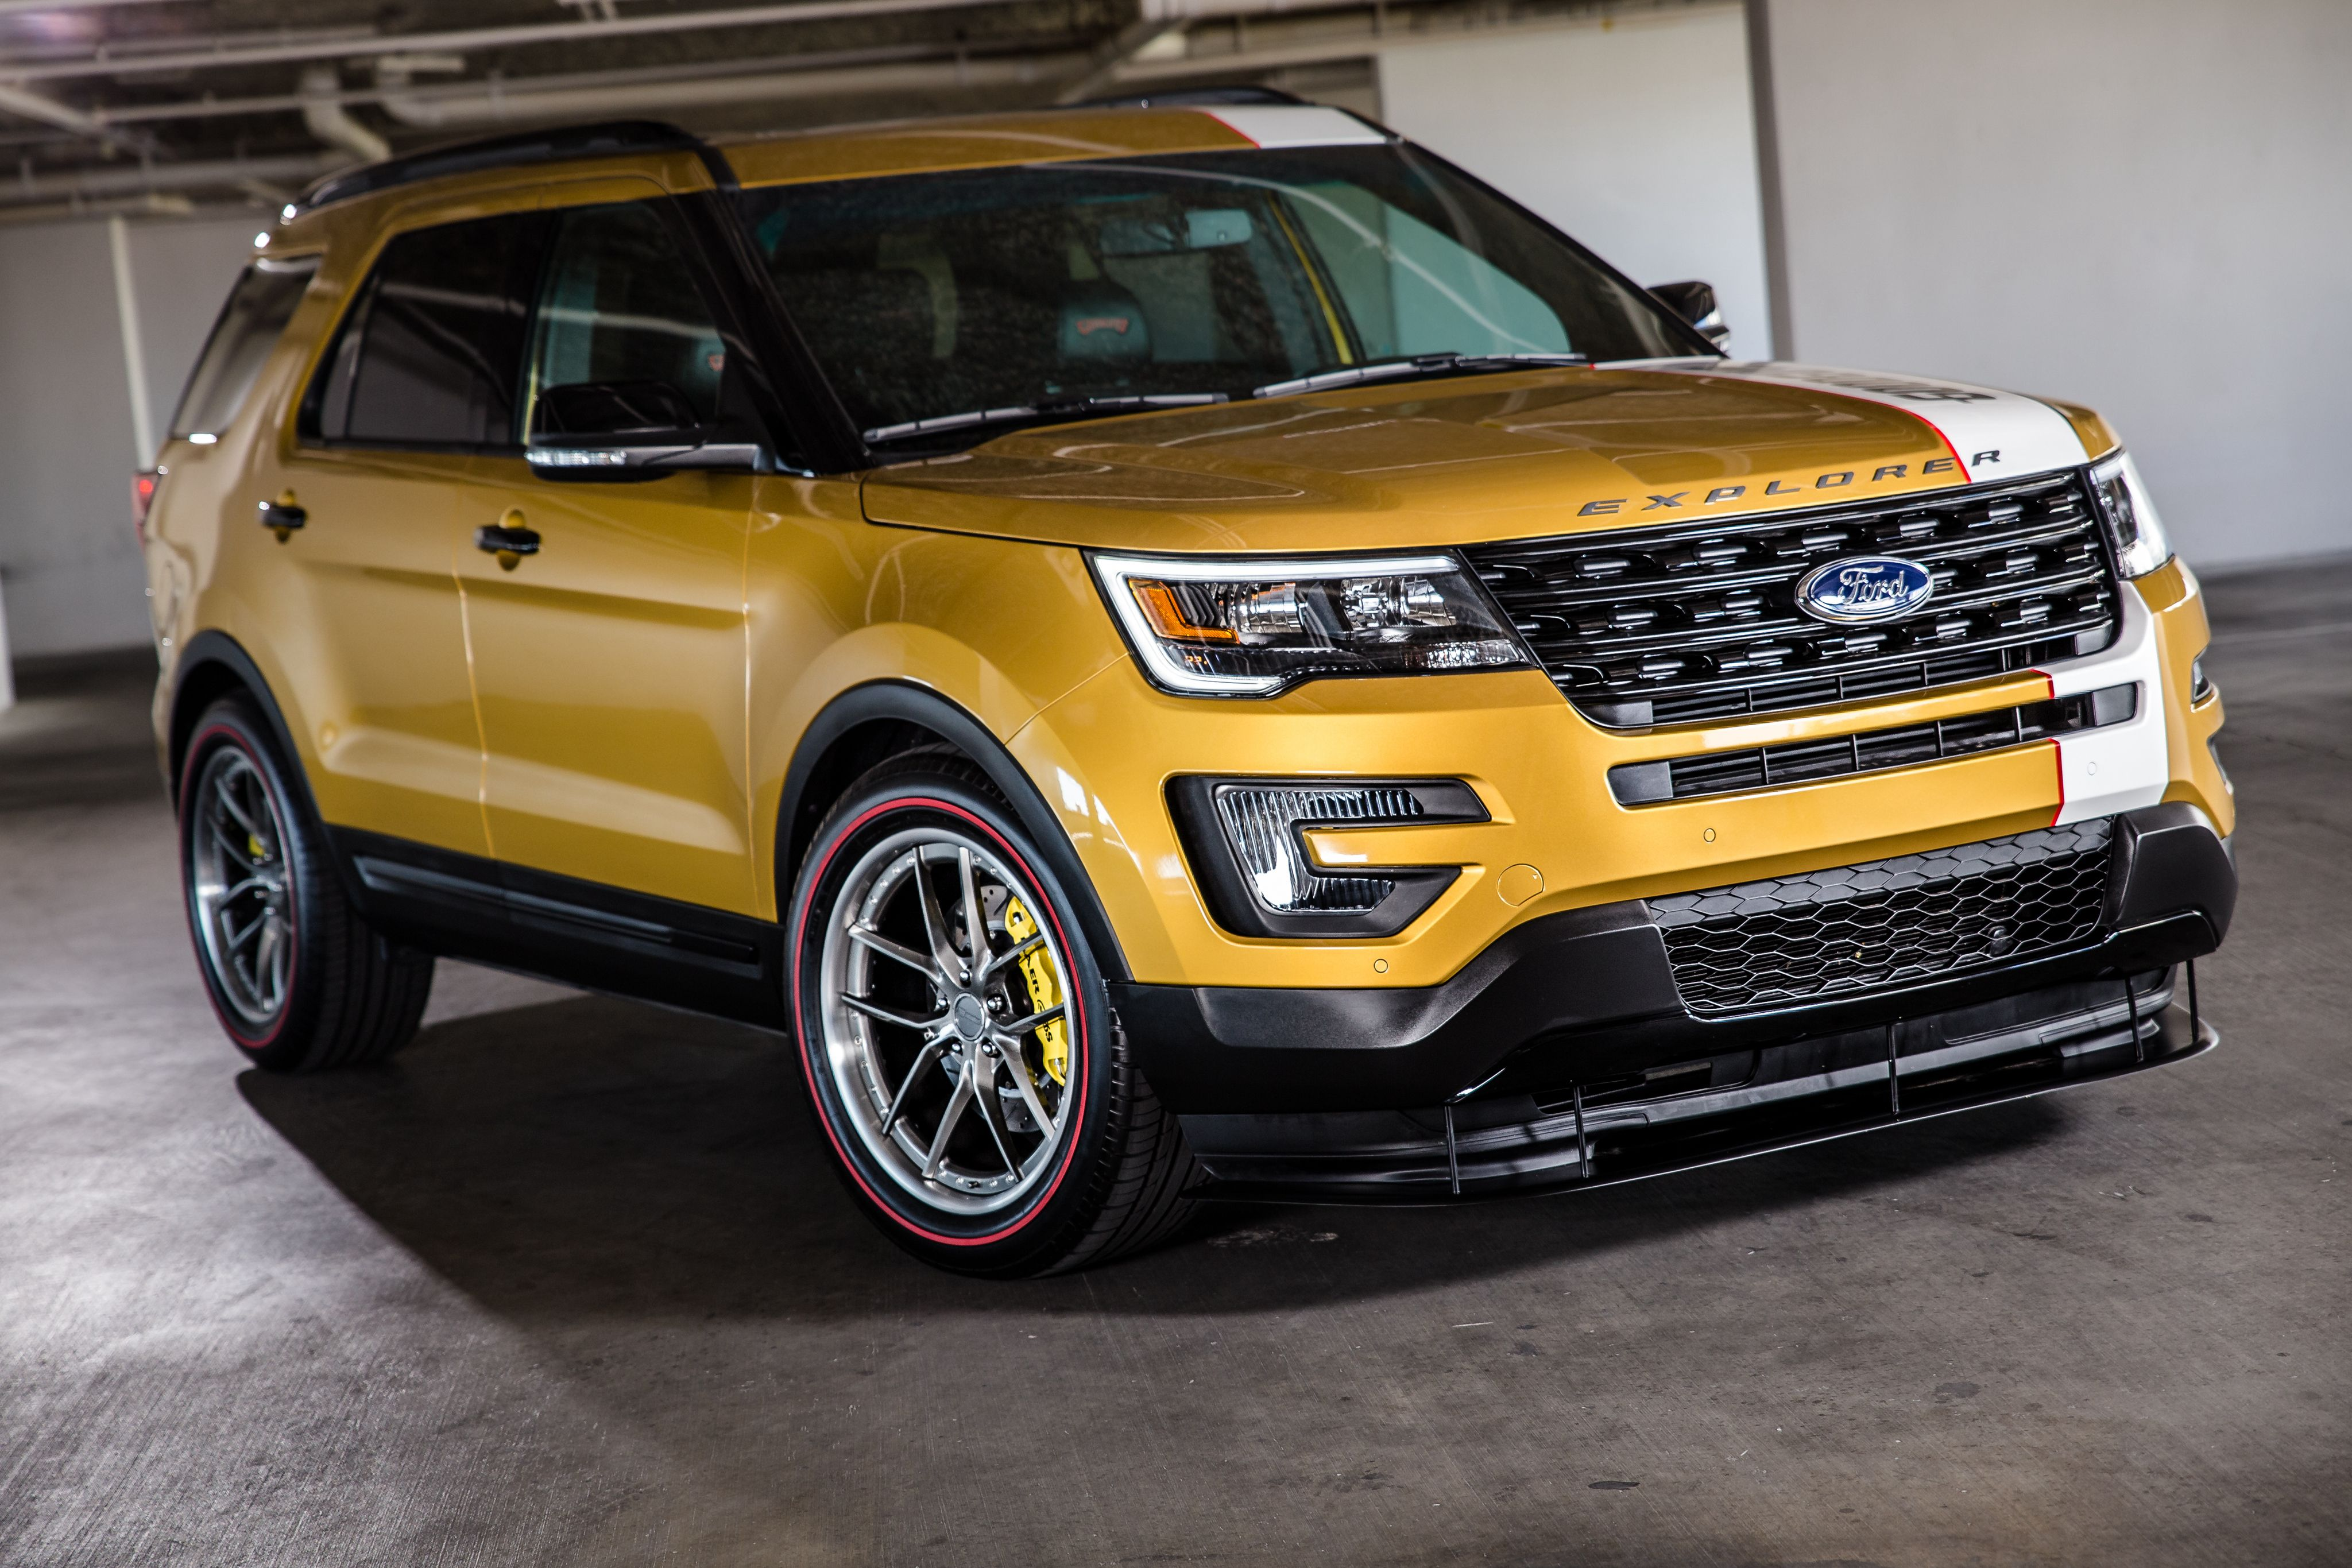 Ford Explorer Sport By Goodguys 11 2015 Con Imagenes Ford